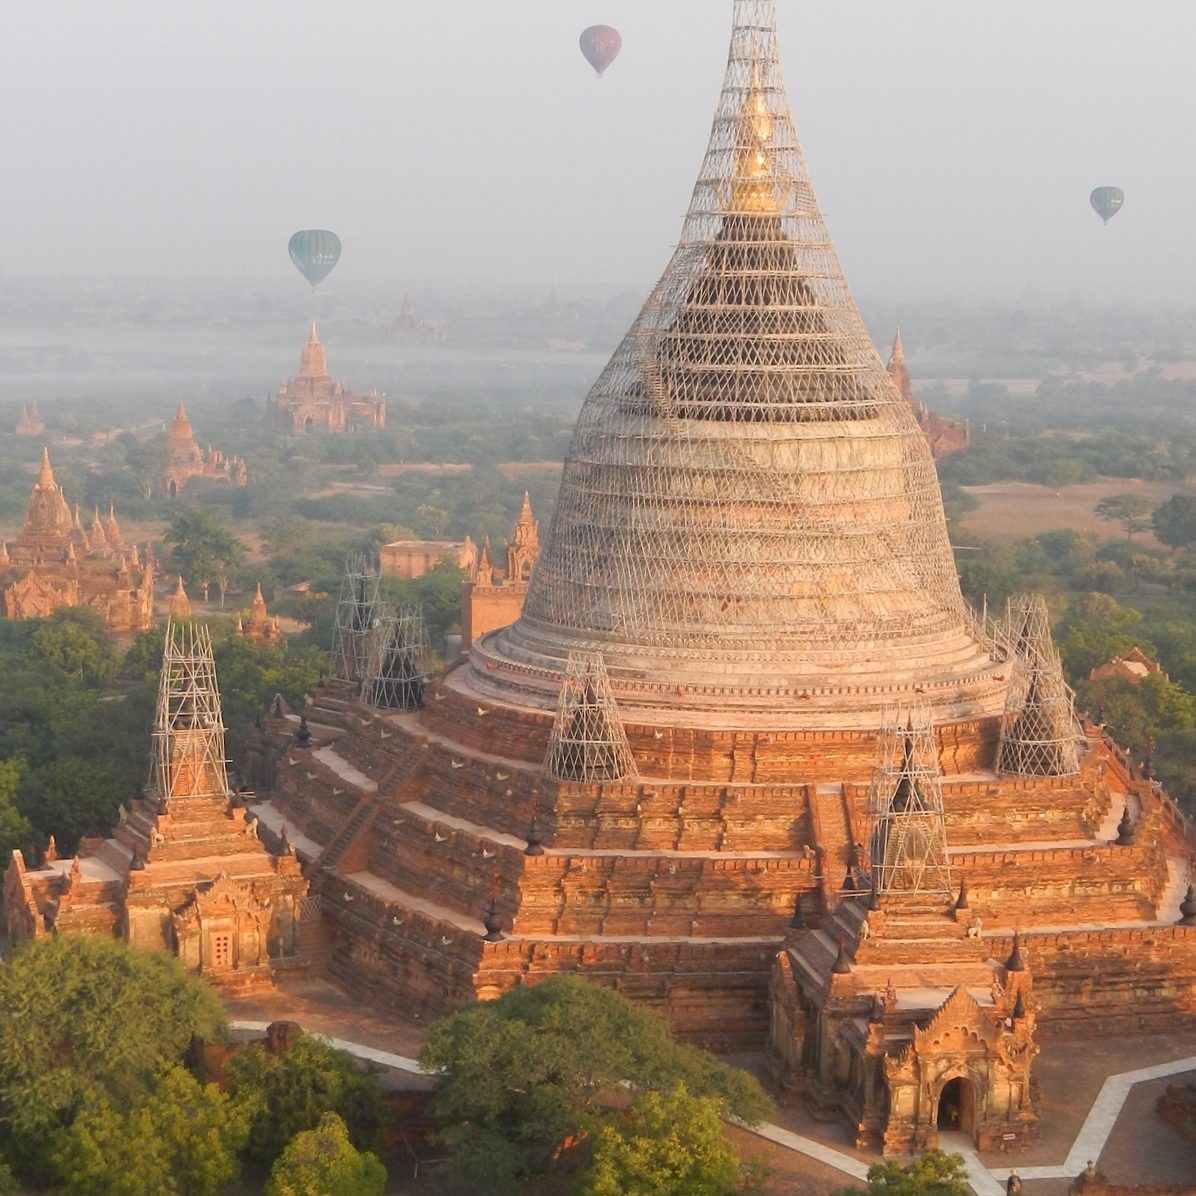 Temples of Bagan, Myanmar (Burma) by The Doubtful Traveller